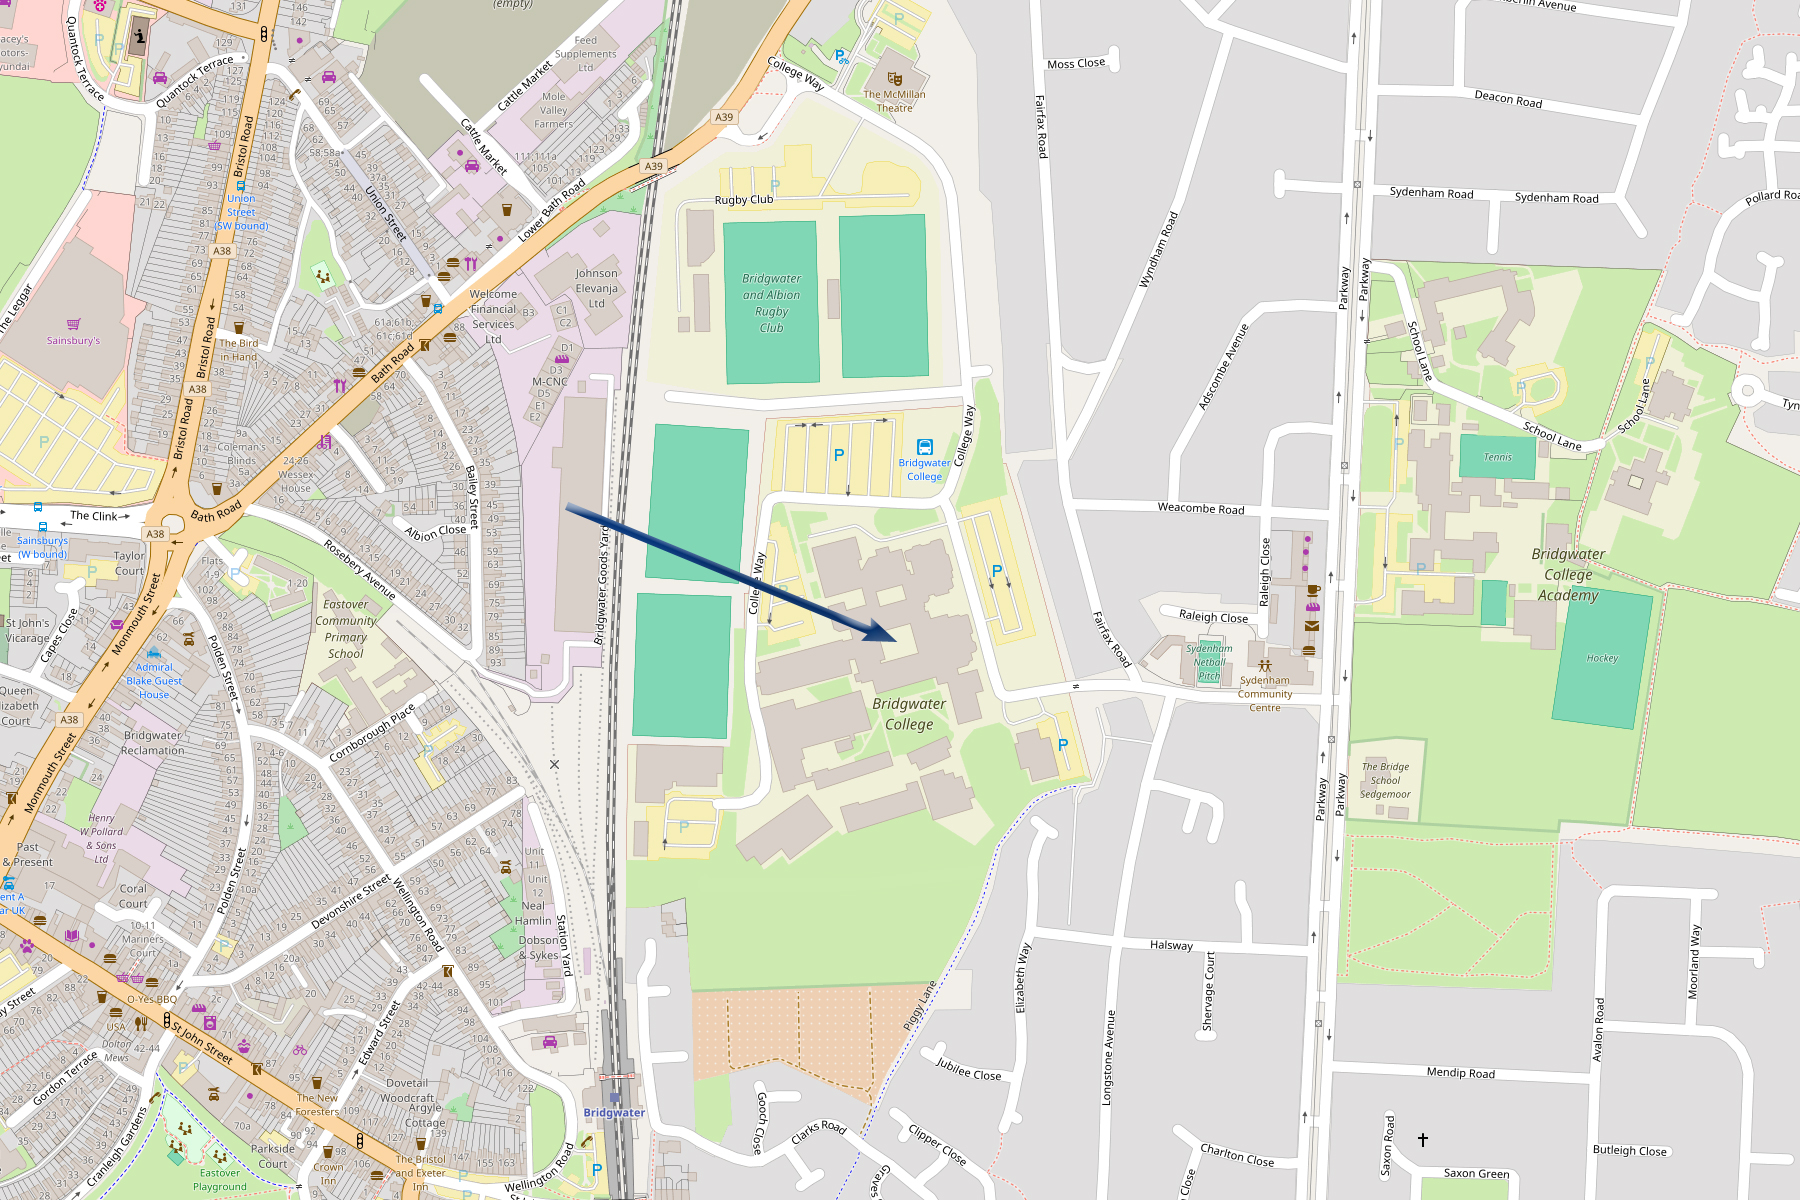 Map to Bridgwater College